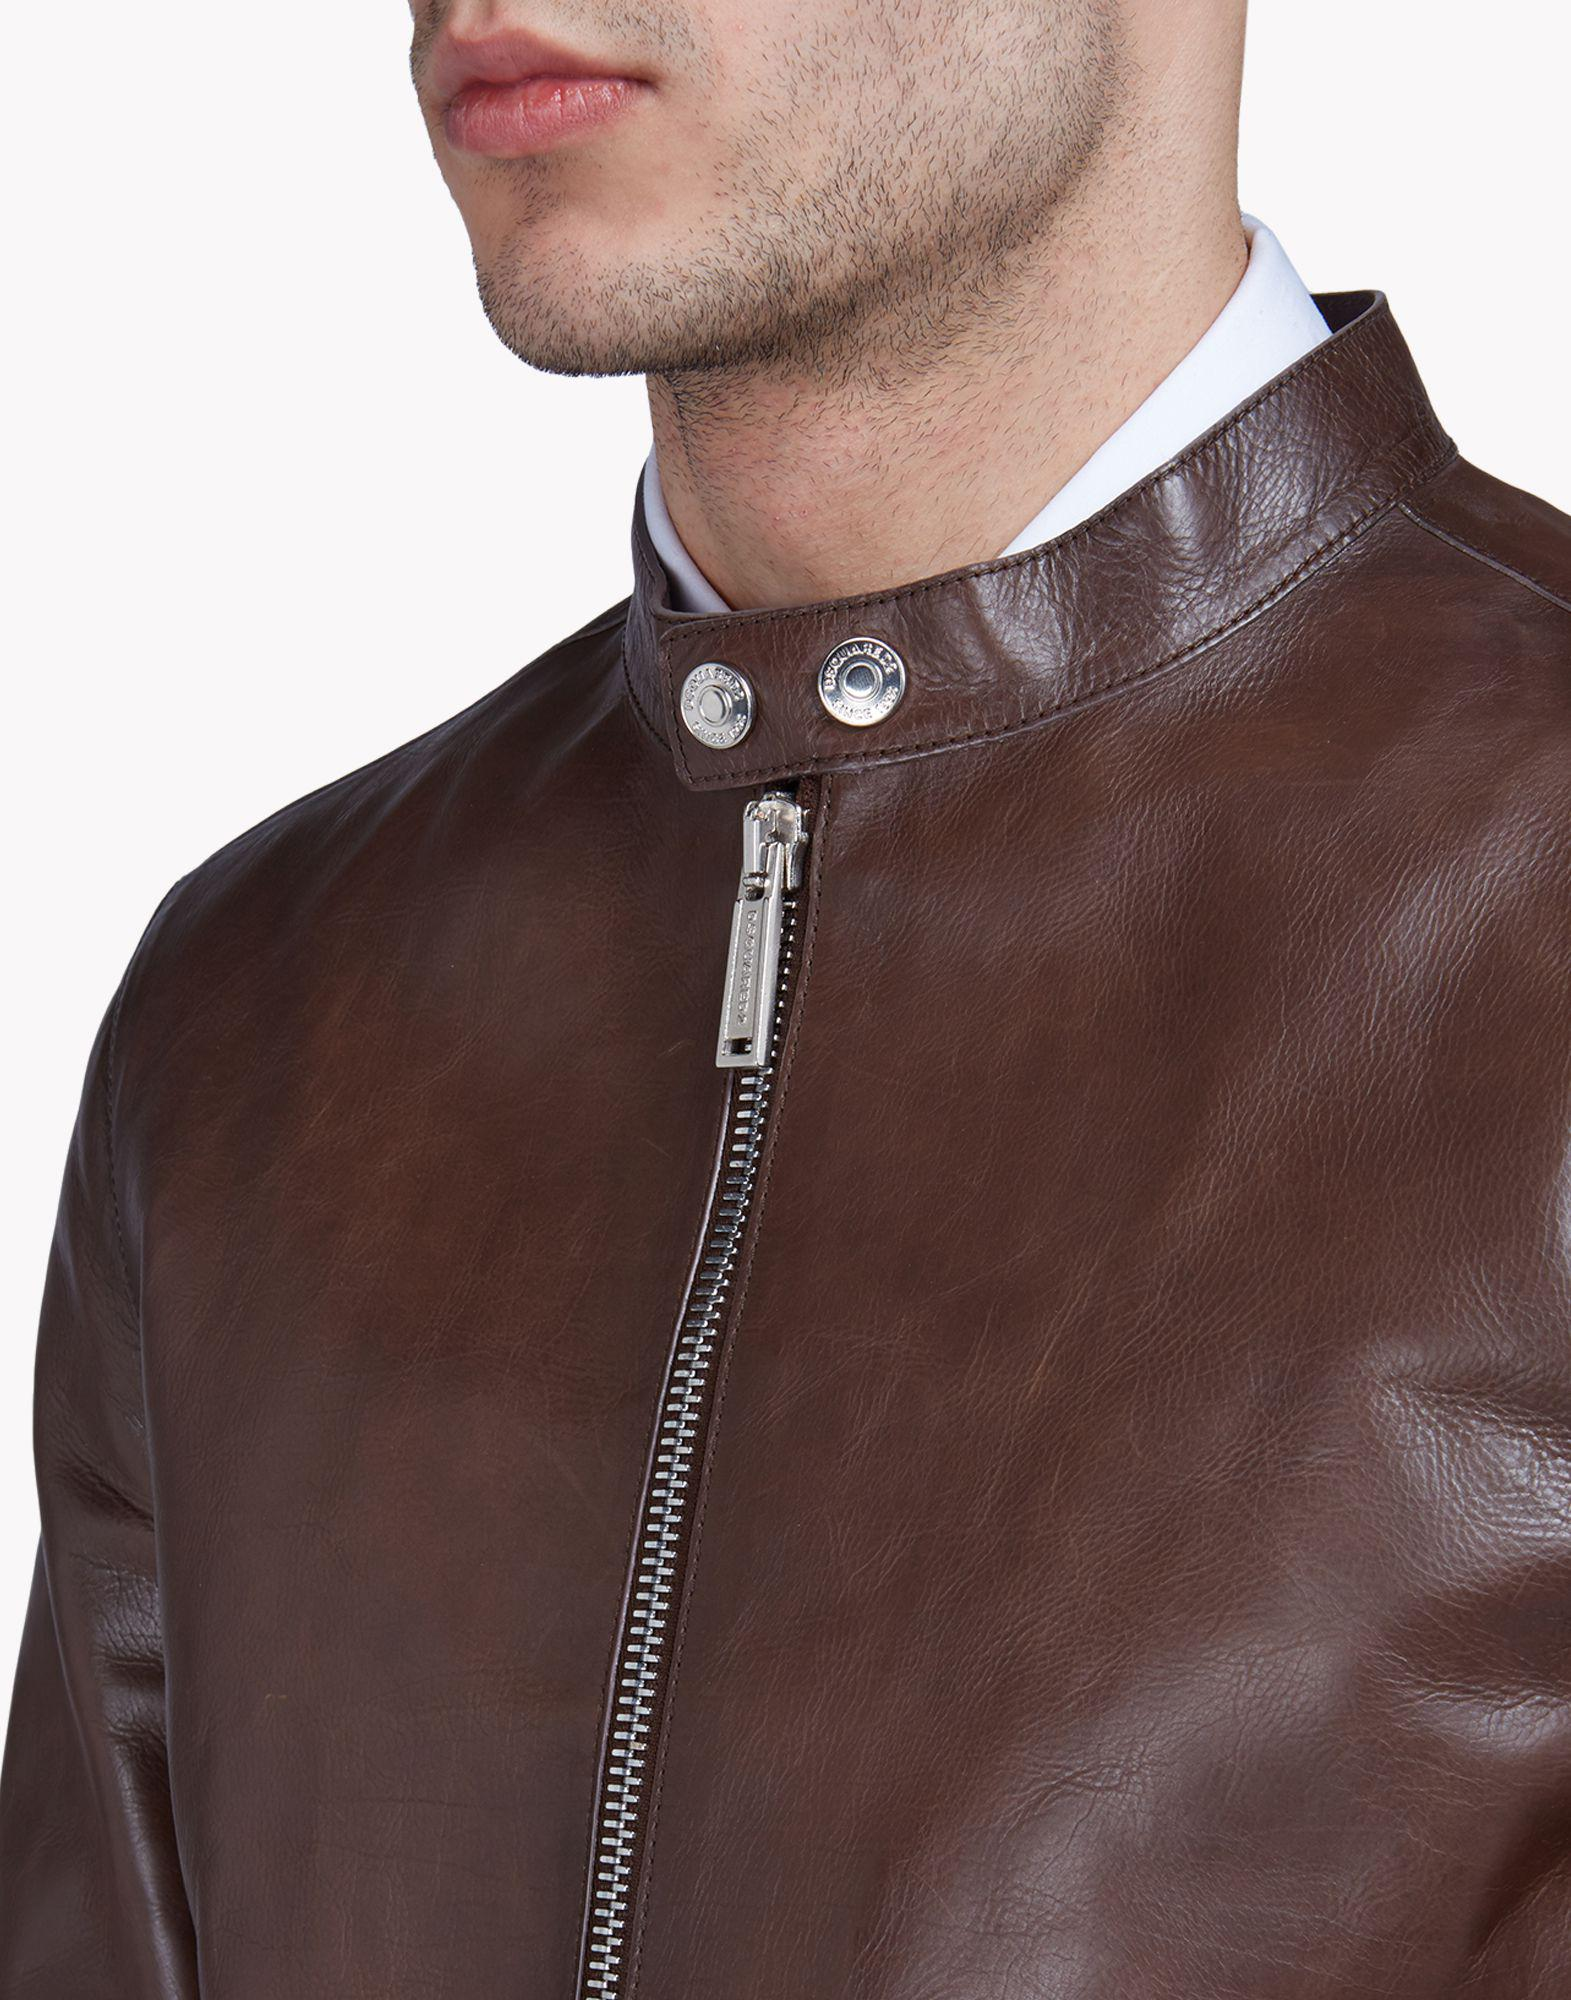 DSquared² Leather Jacket in Cocoa (Brown) for Men